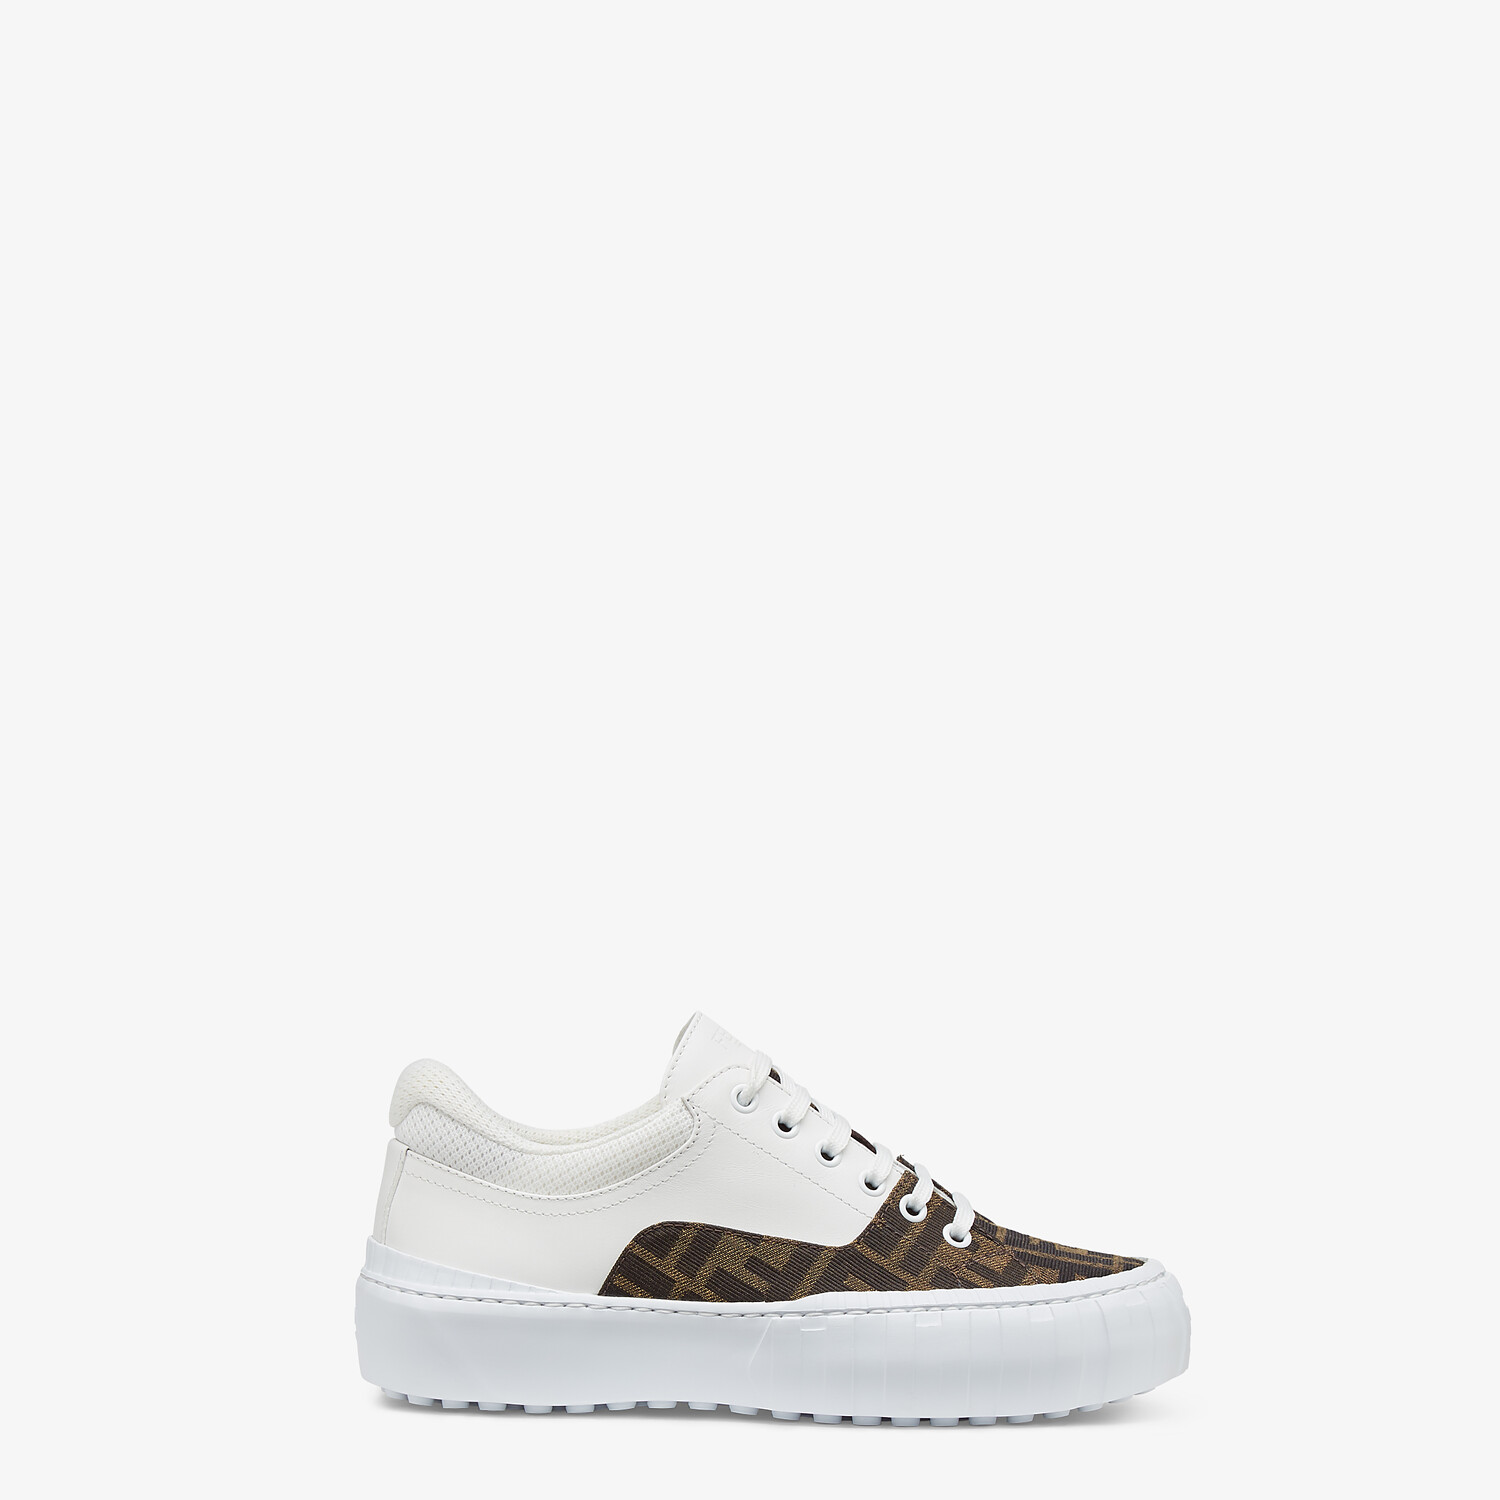 FENDI FENDI FORCE - Brown fabric and leather low tops - view 1 detail